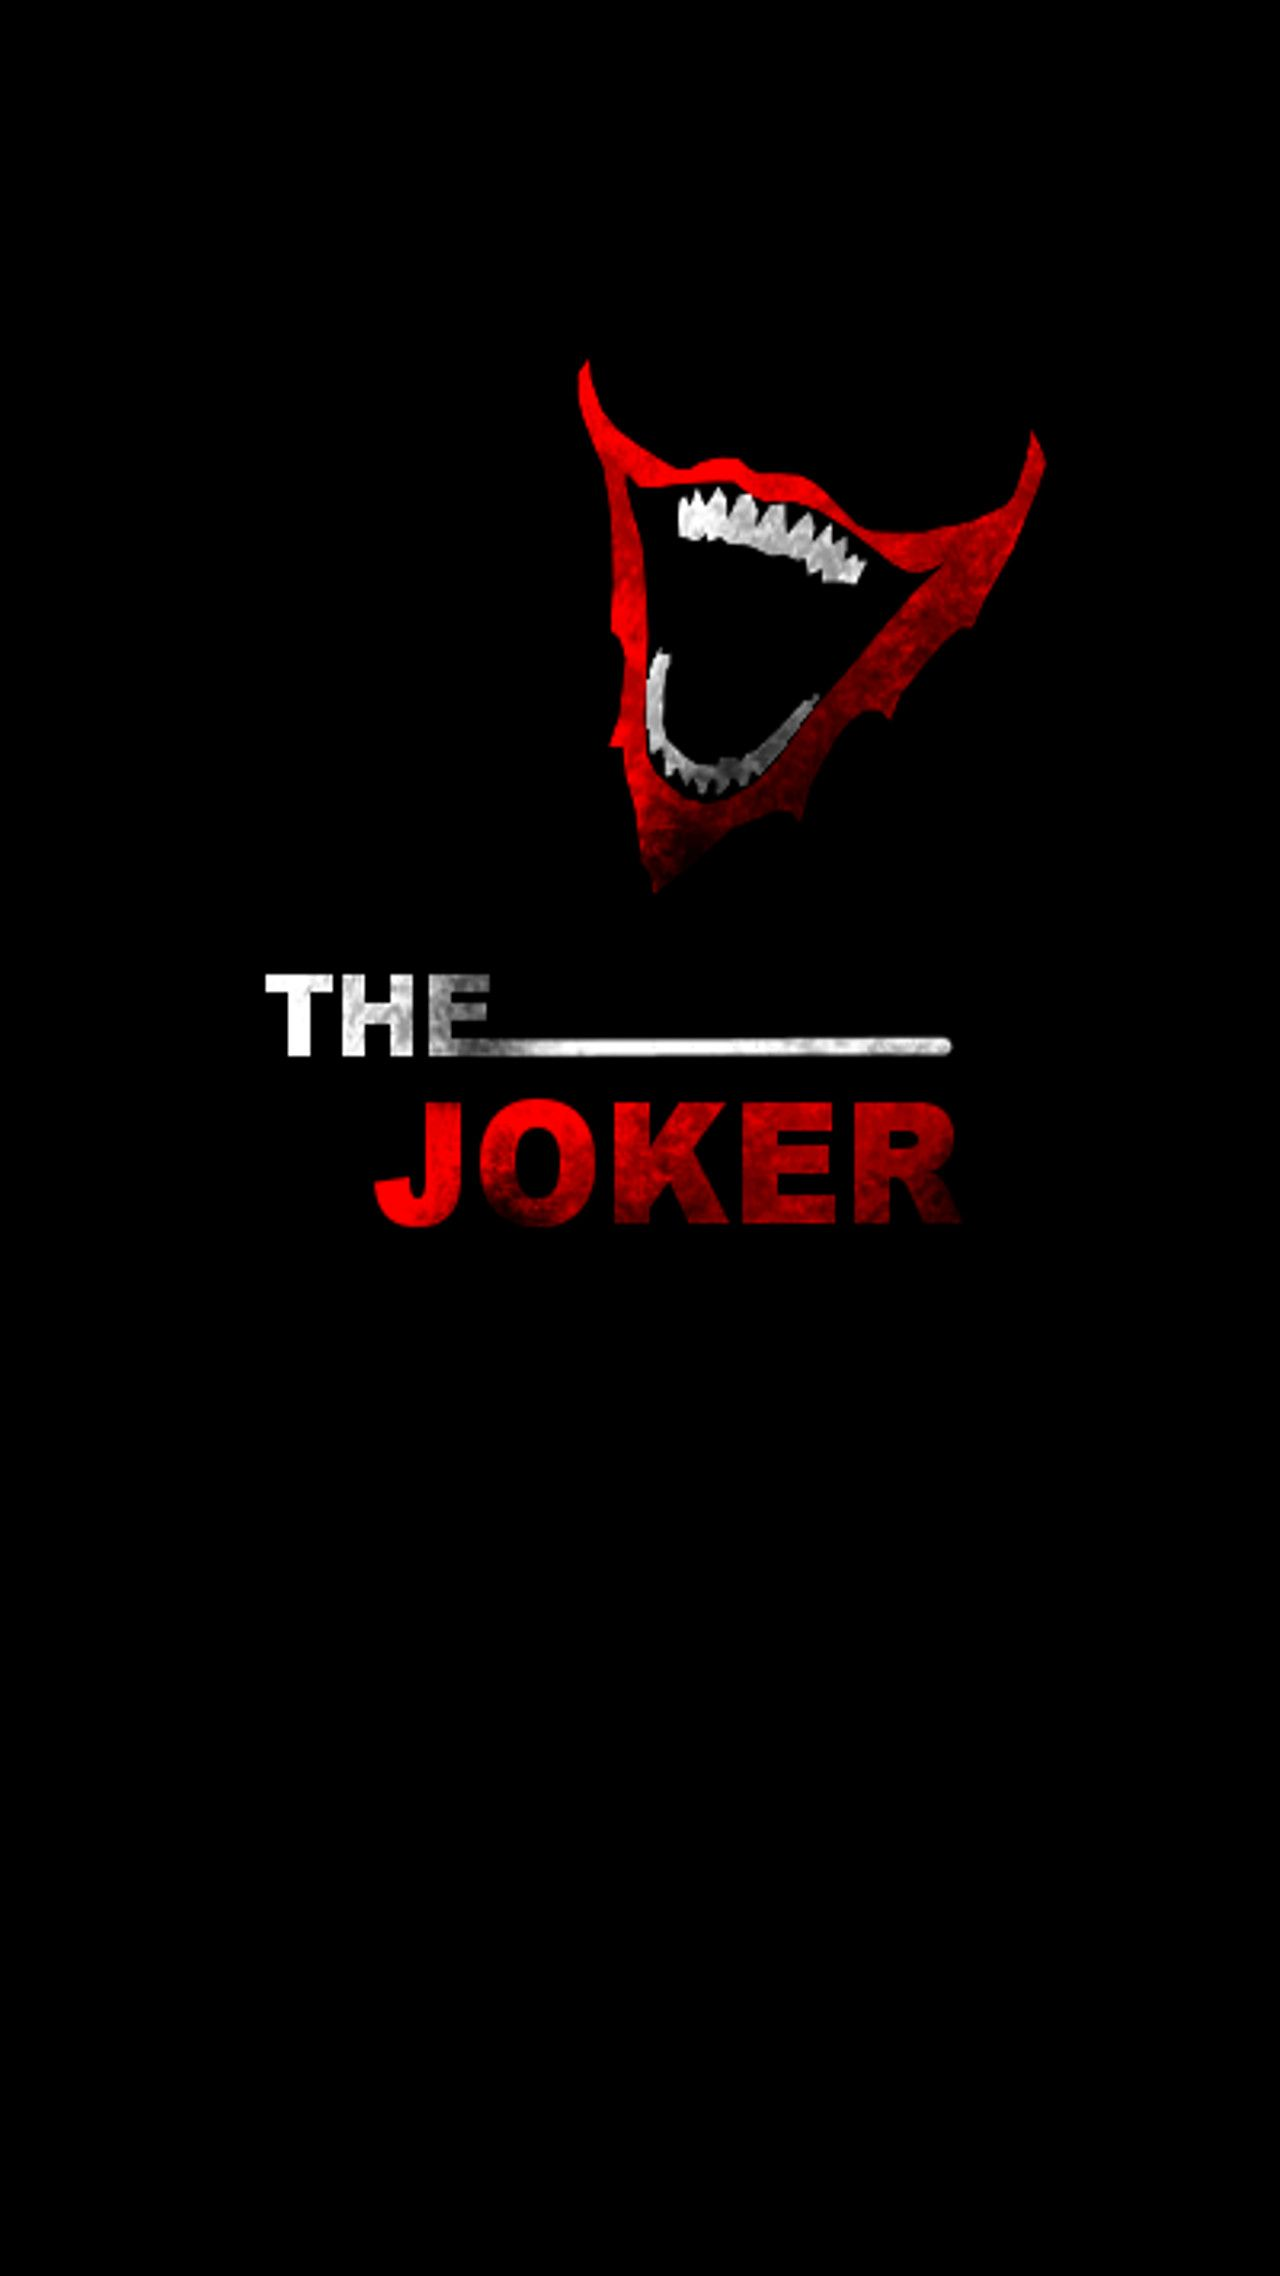 1280x2276 Joker Iphone 6 Wallpaper By Kairofall Joker Iphone 6 Wallpaper By Kairofall Joker Wallpapers Joker Iphone Wallpaper Joker Background